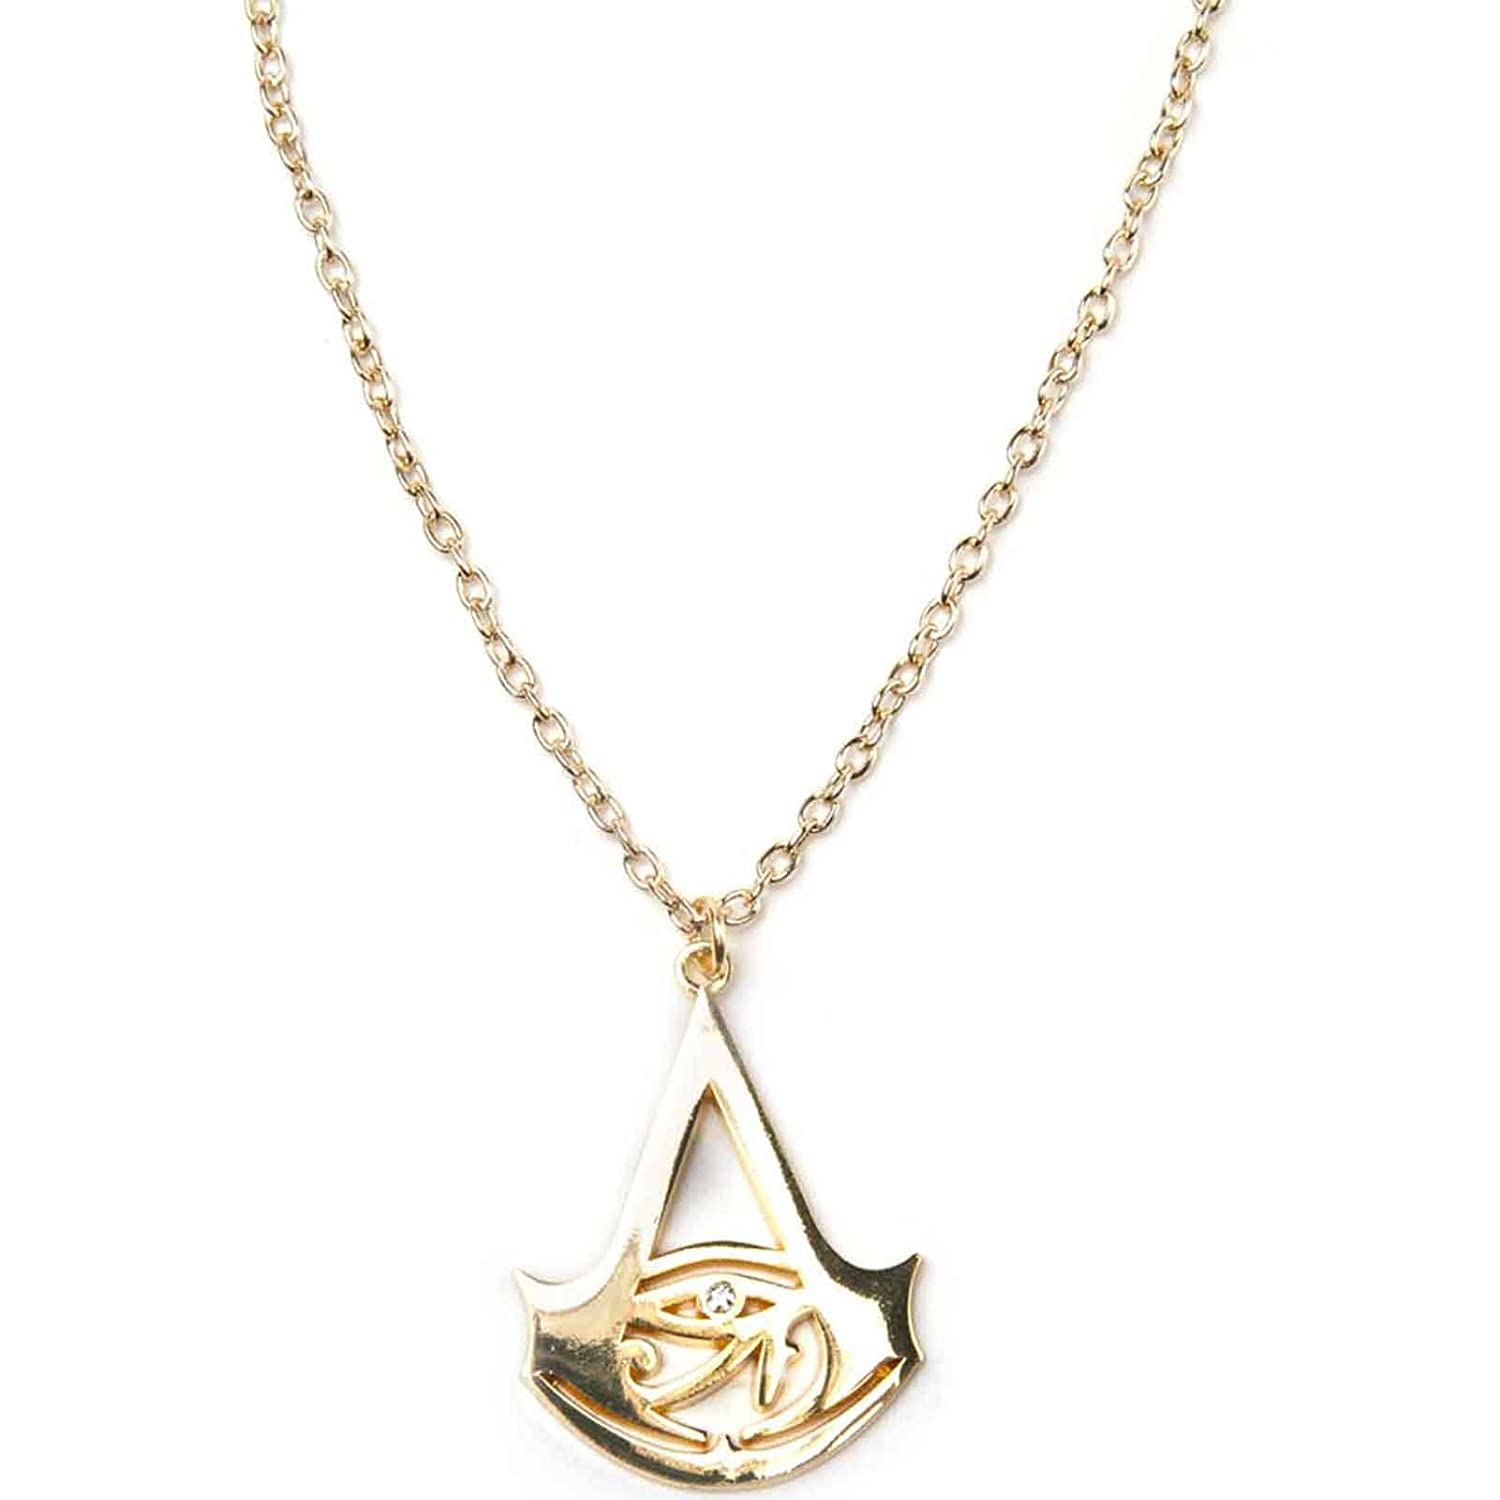 Assassins Creed Origins Necklace Creed Logo Ps4 Xbox Official Assassins Creed Merch